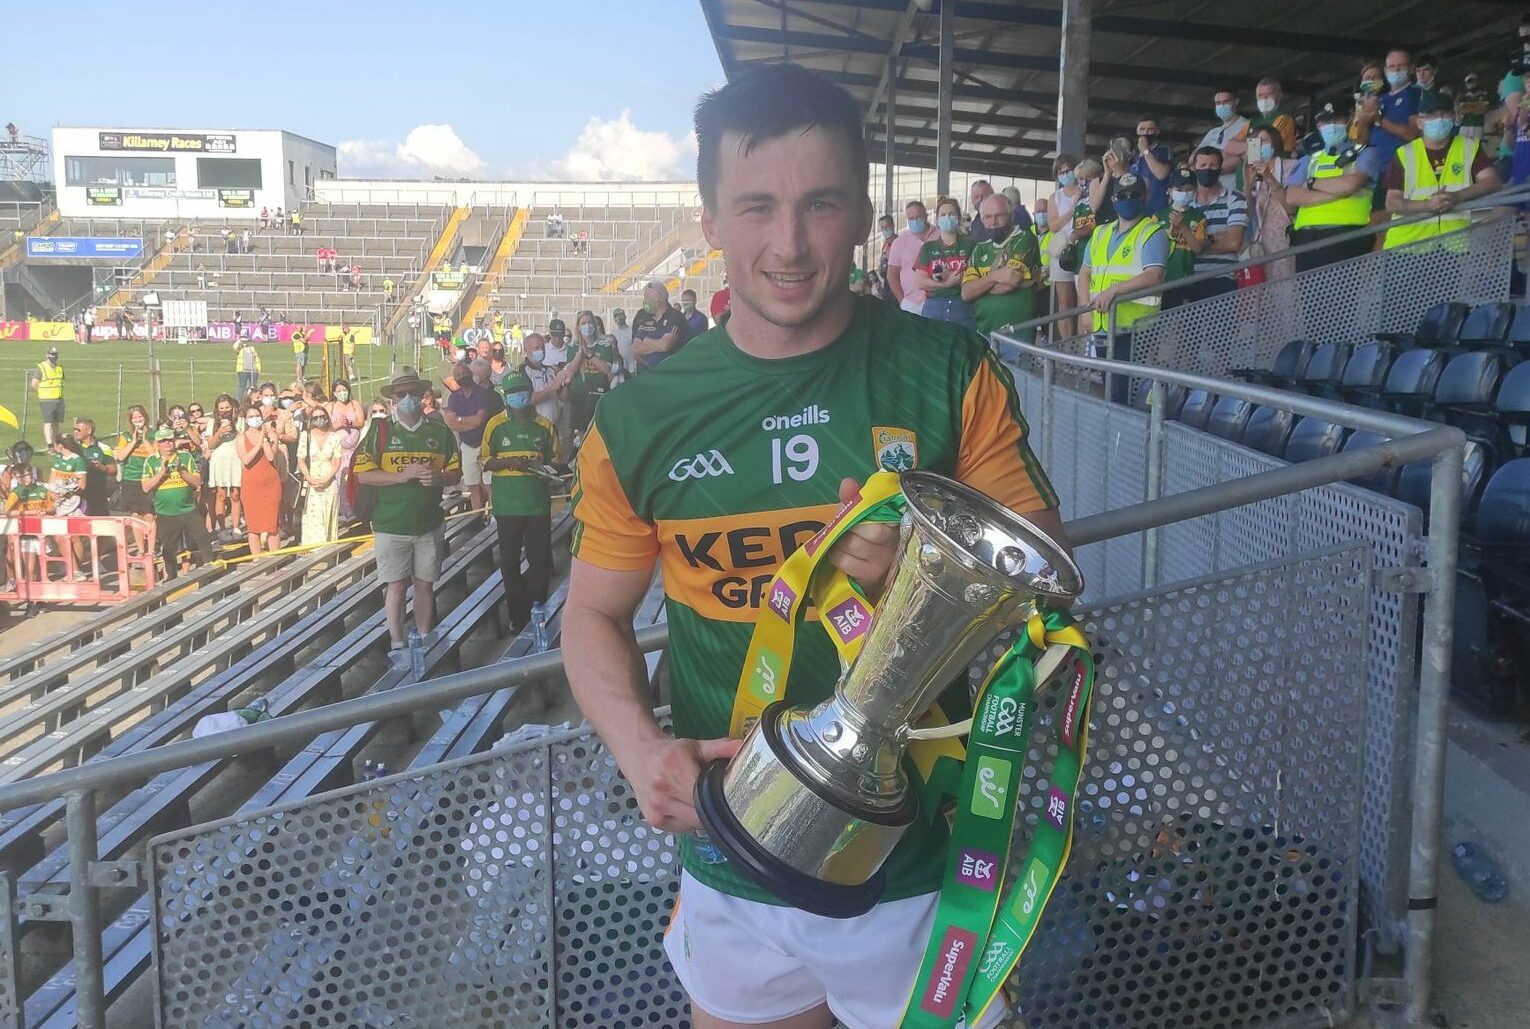 Kerry are the 2021 Munster Champions!